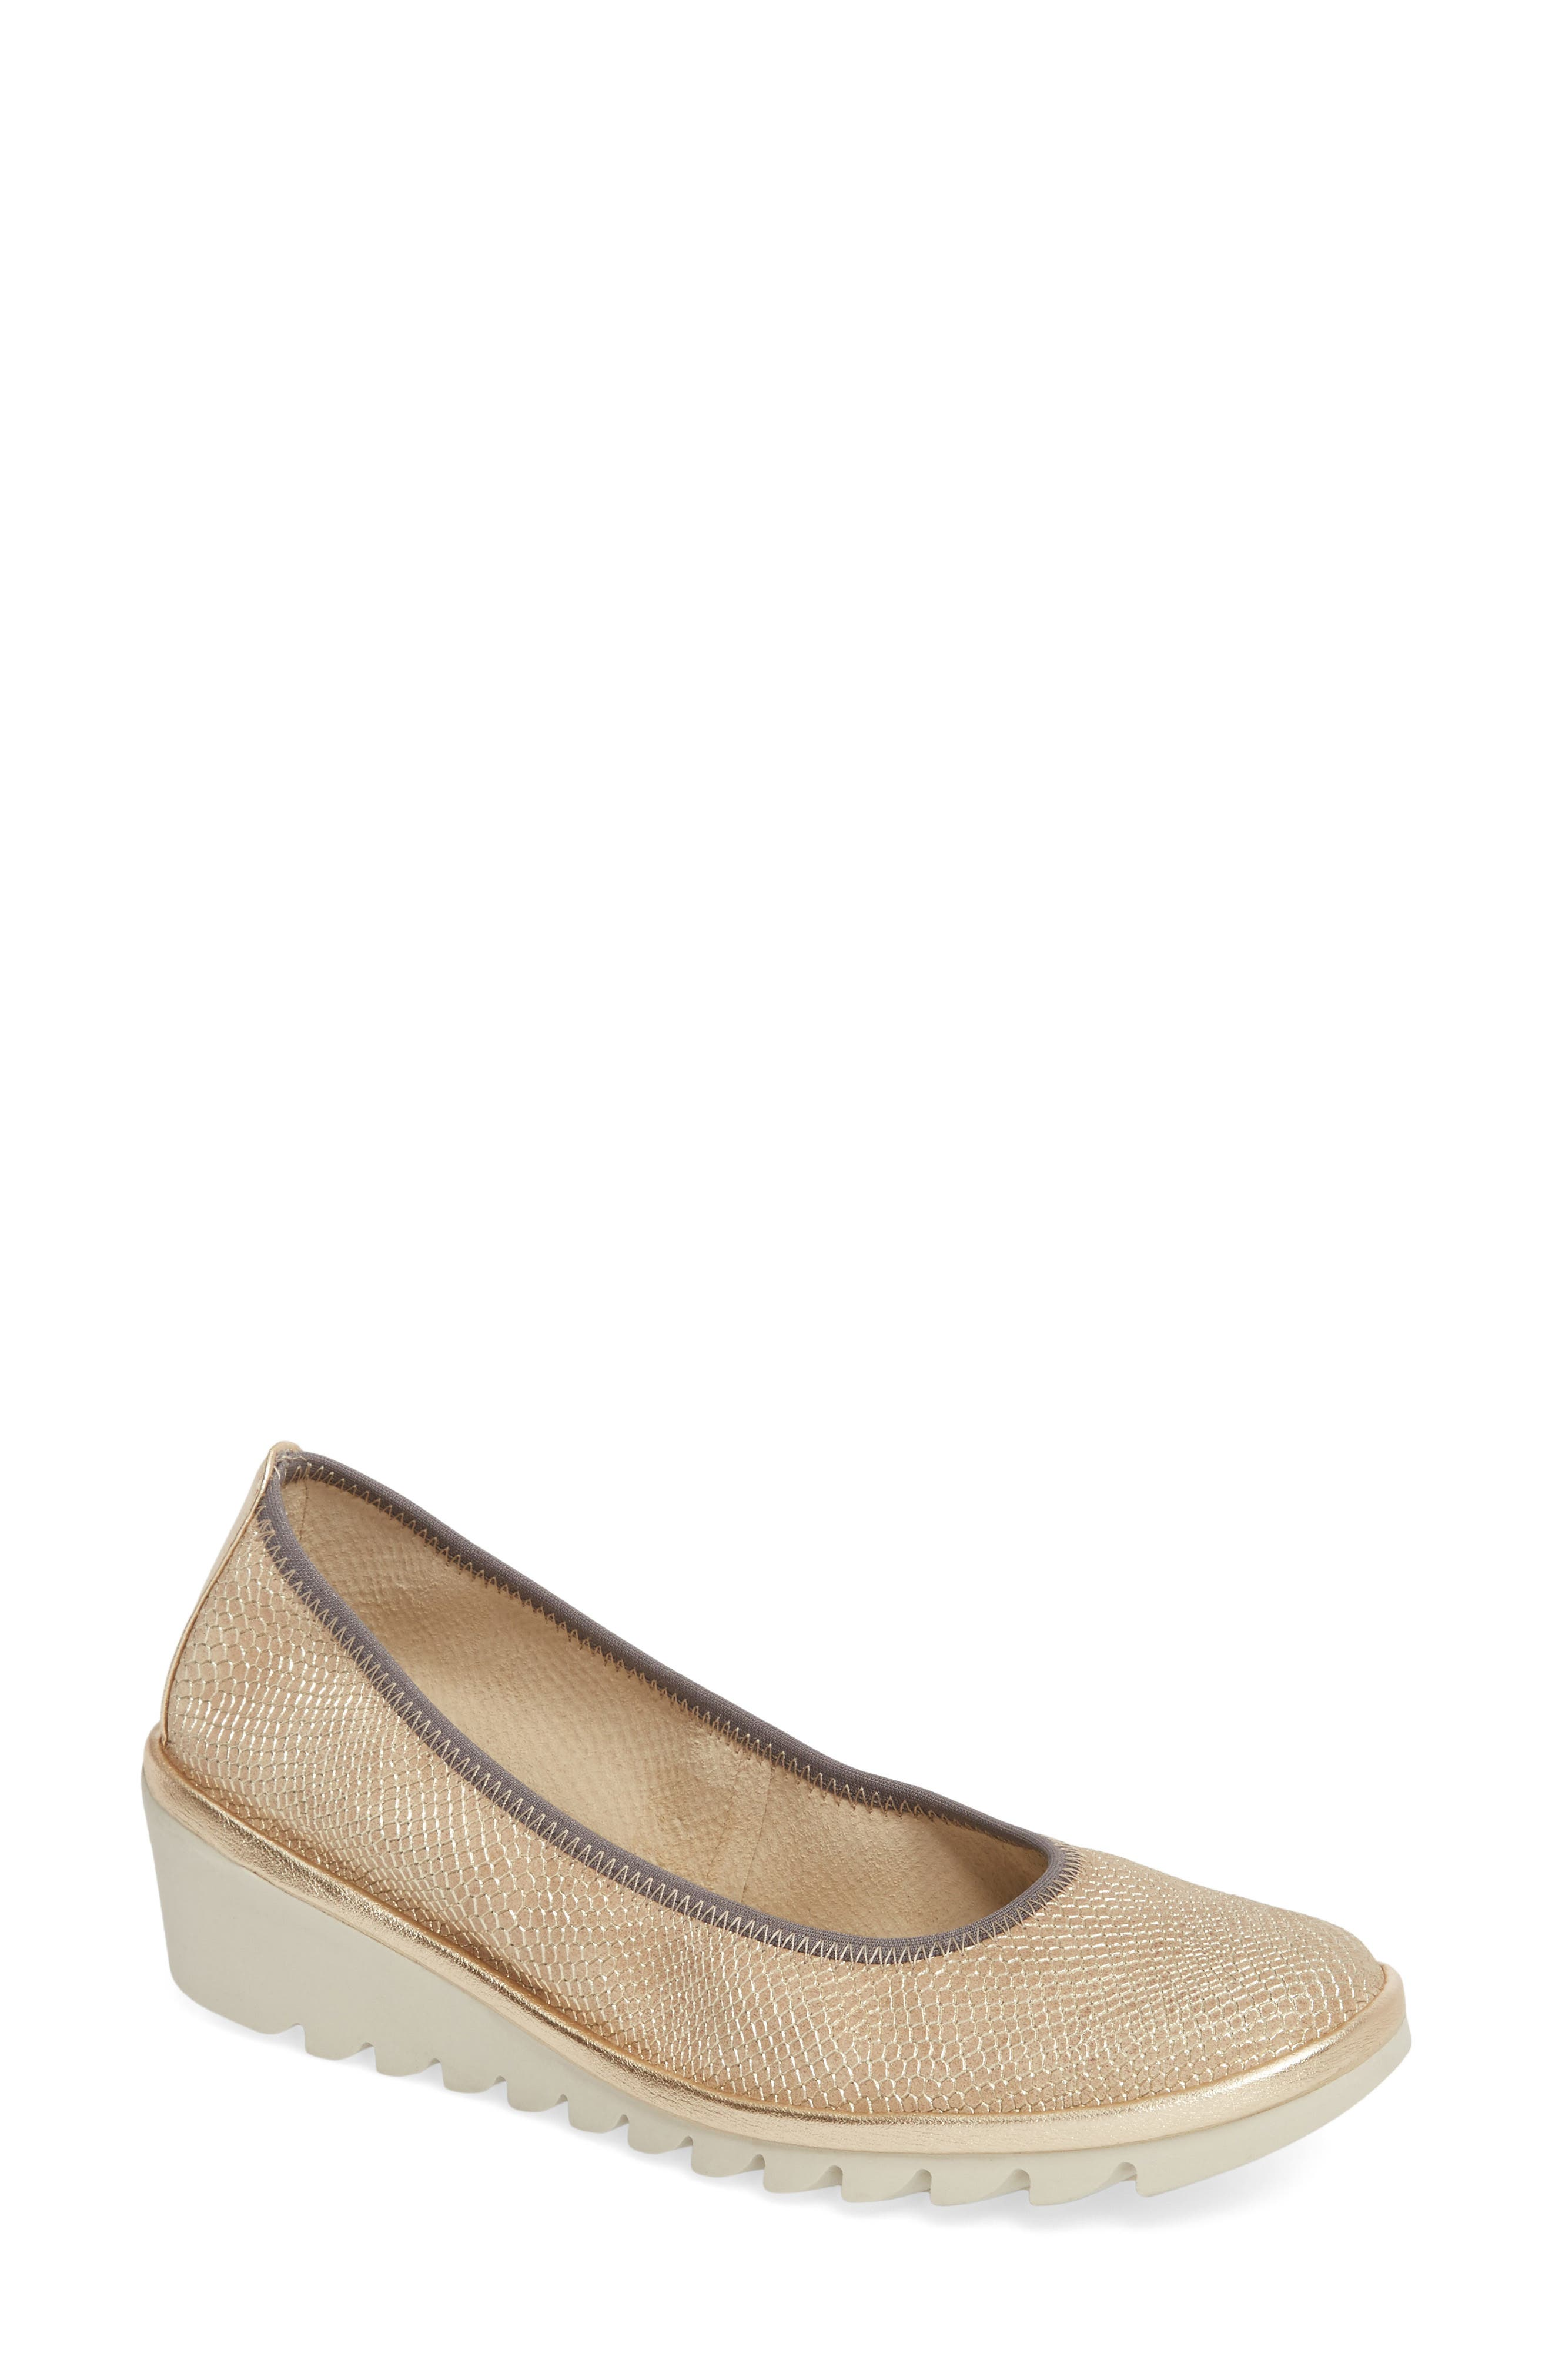 Mel A Drama Wedge Skimmer,                             Main thumbnail 1, color,                             DUNE LEATHER